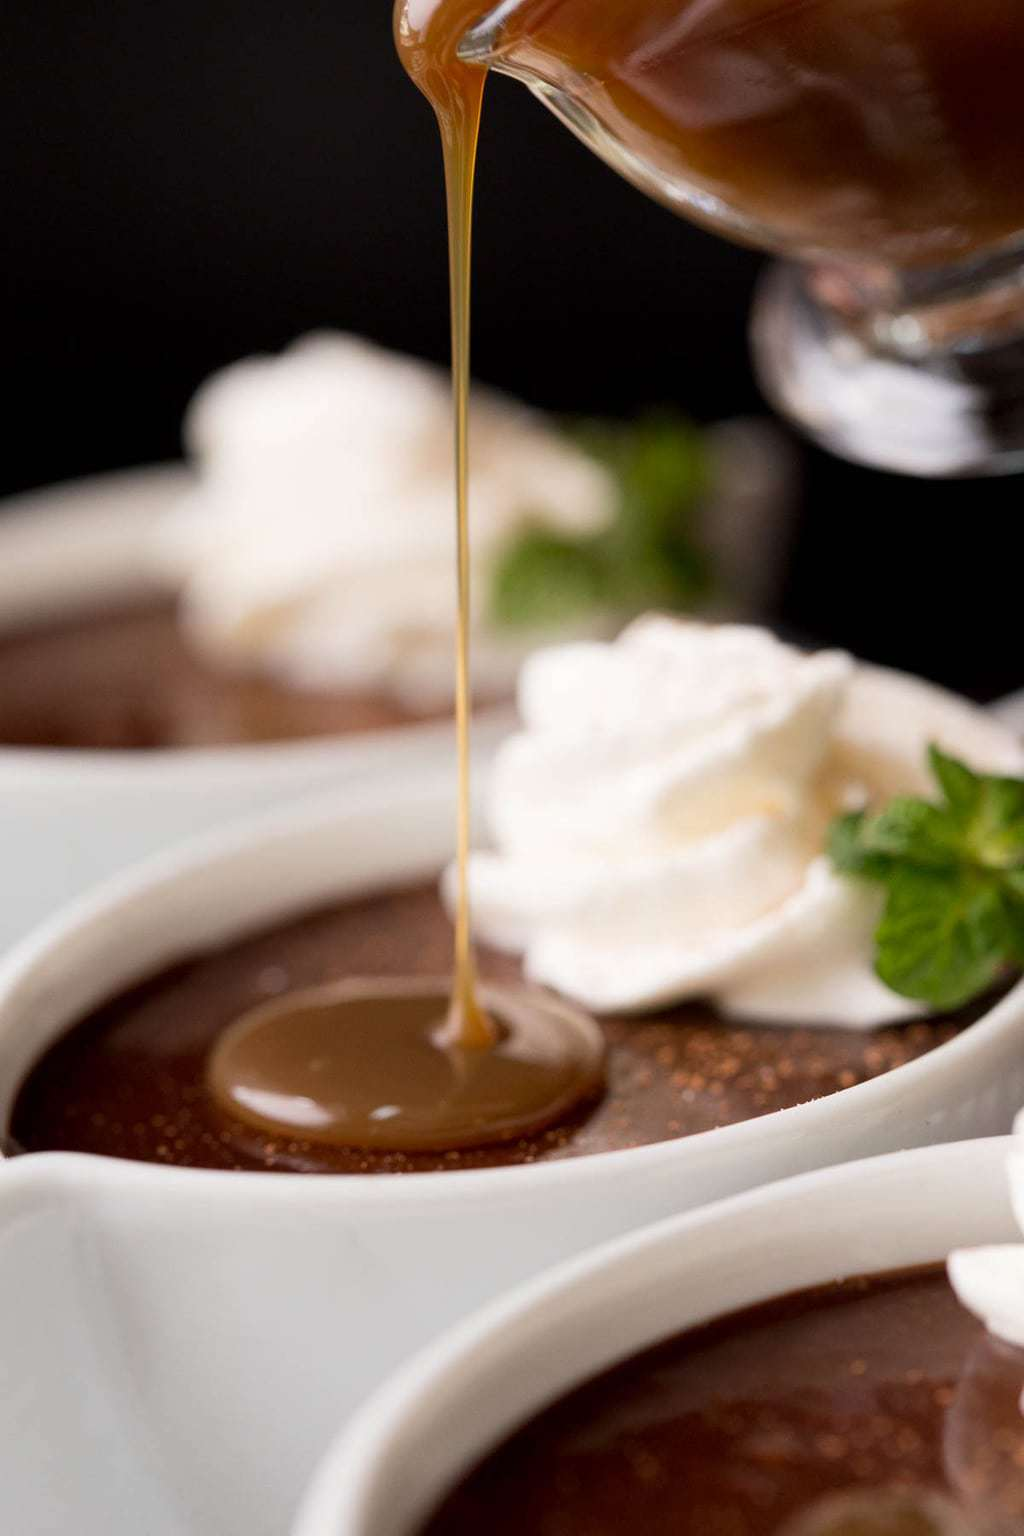 Closeup photo of a dessert cup of Blender Chocolate Pots de Crème with Bailey's Irish Cream sauce being poured over it.